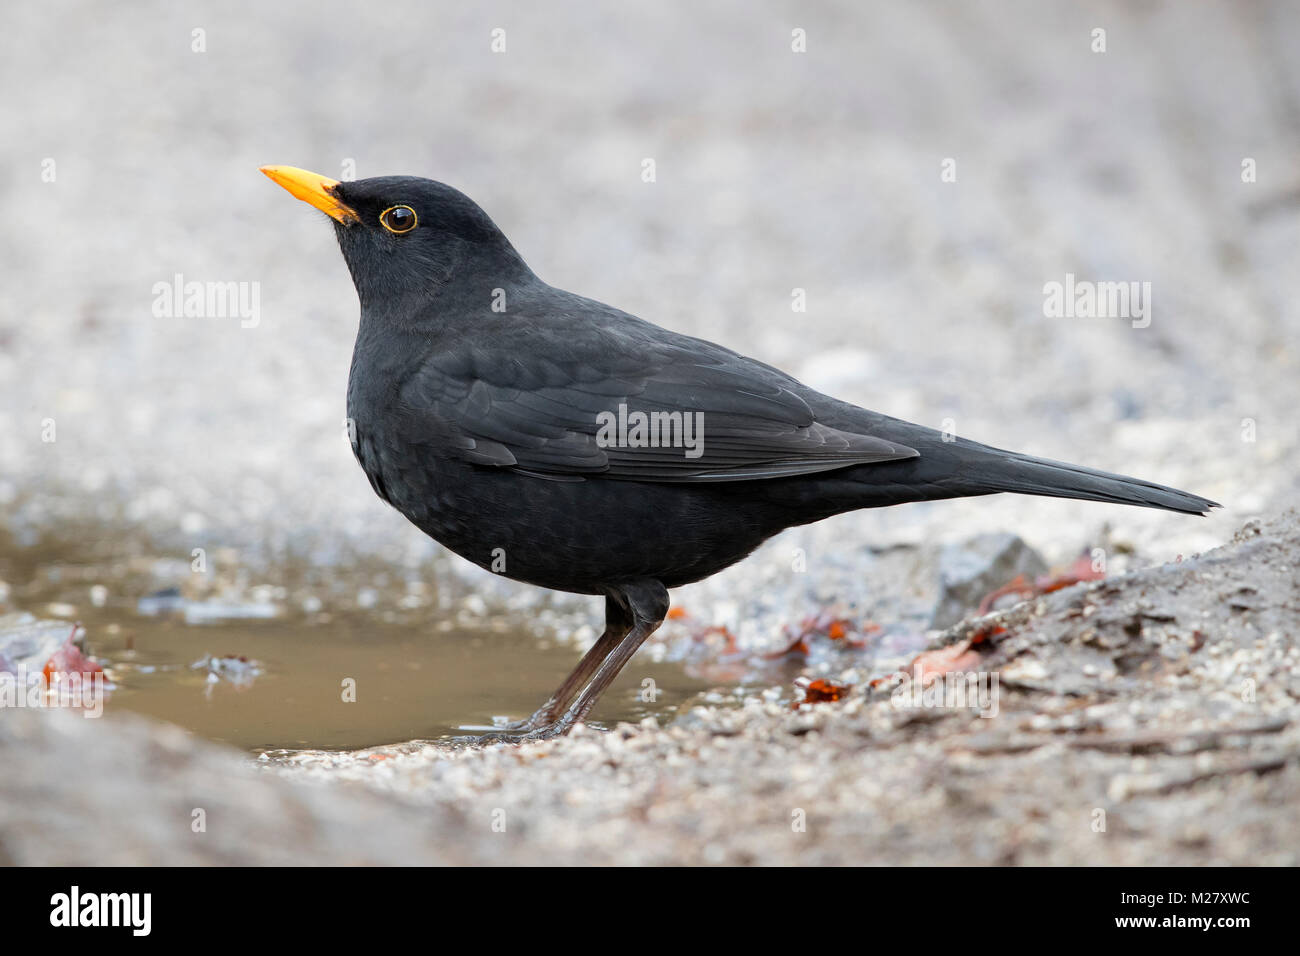 Common Blackbird (Turdus merula), adult male standing on the ground - Stock Image